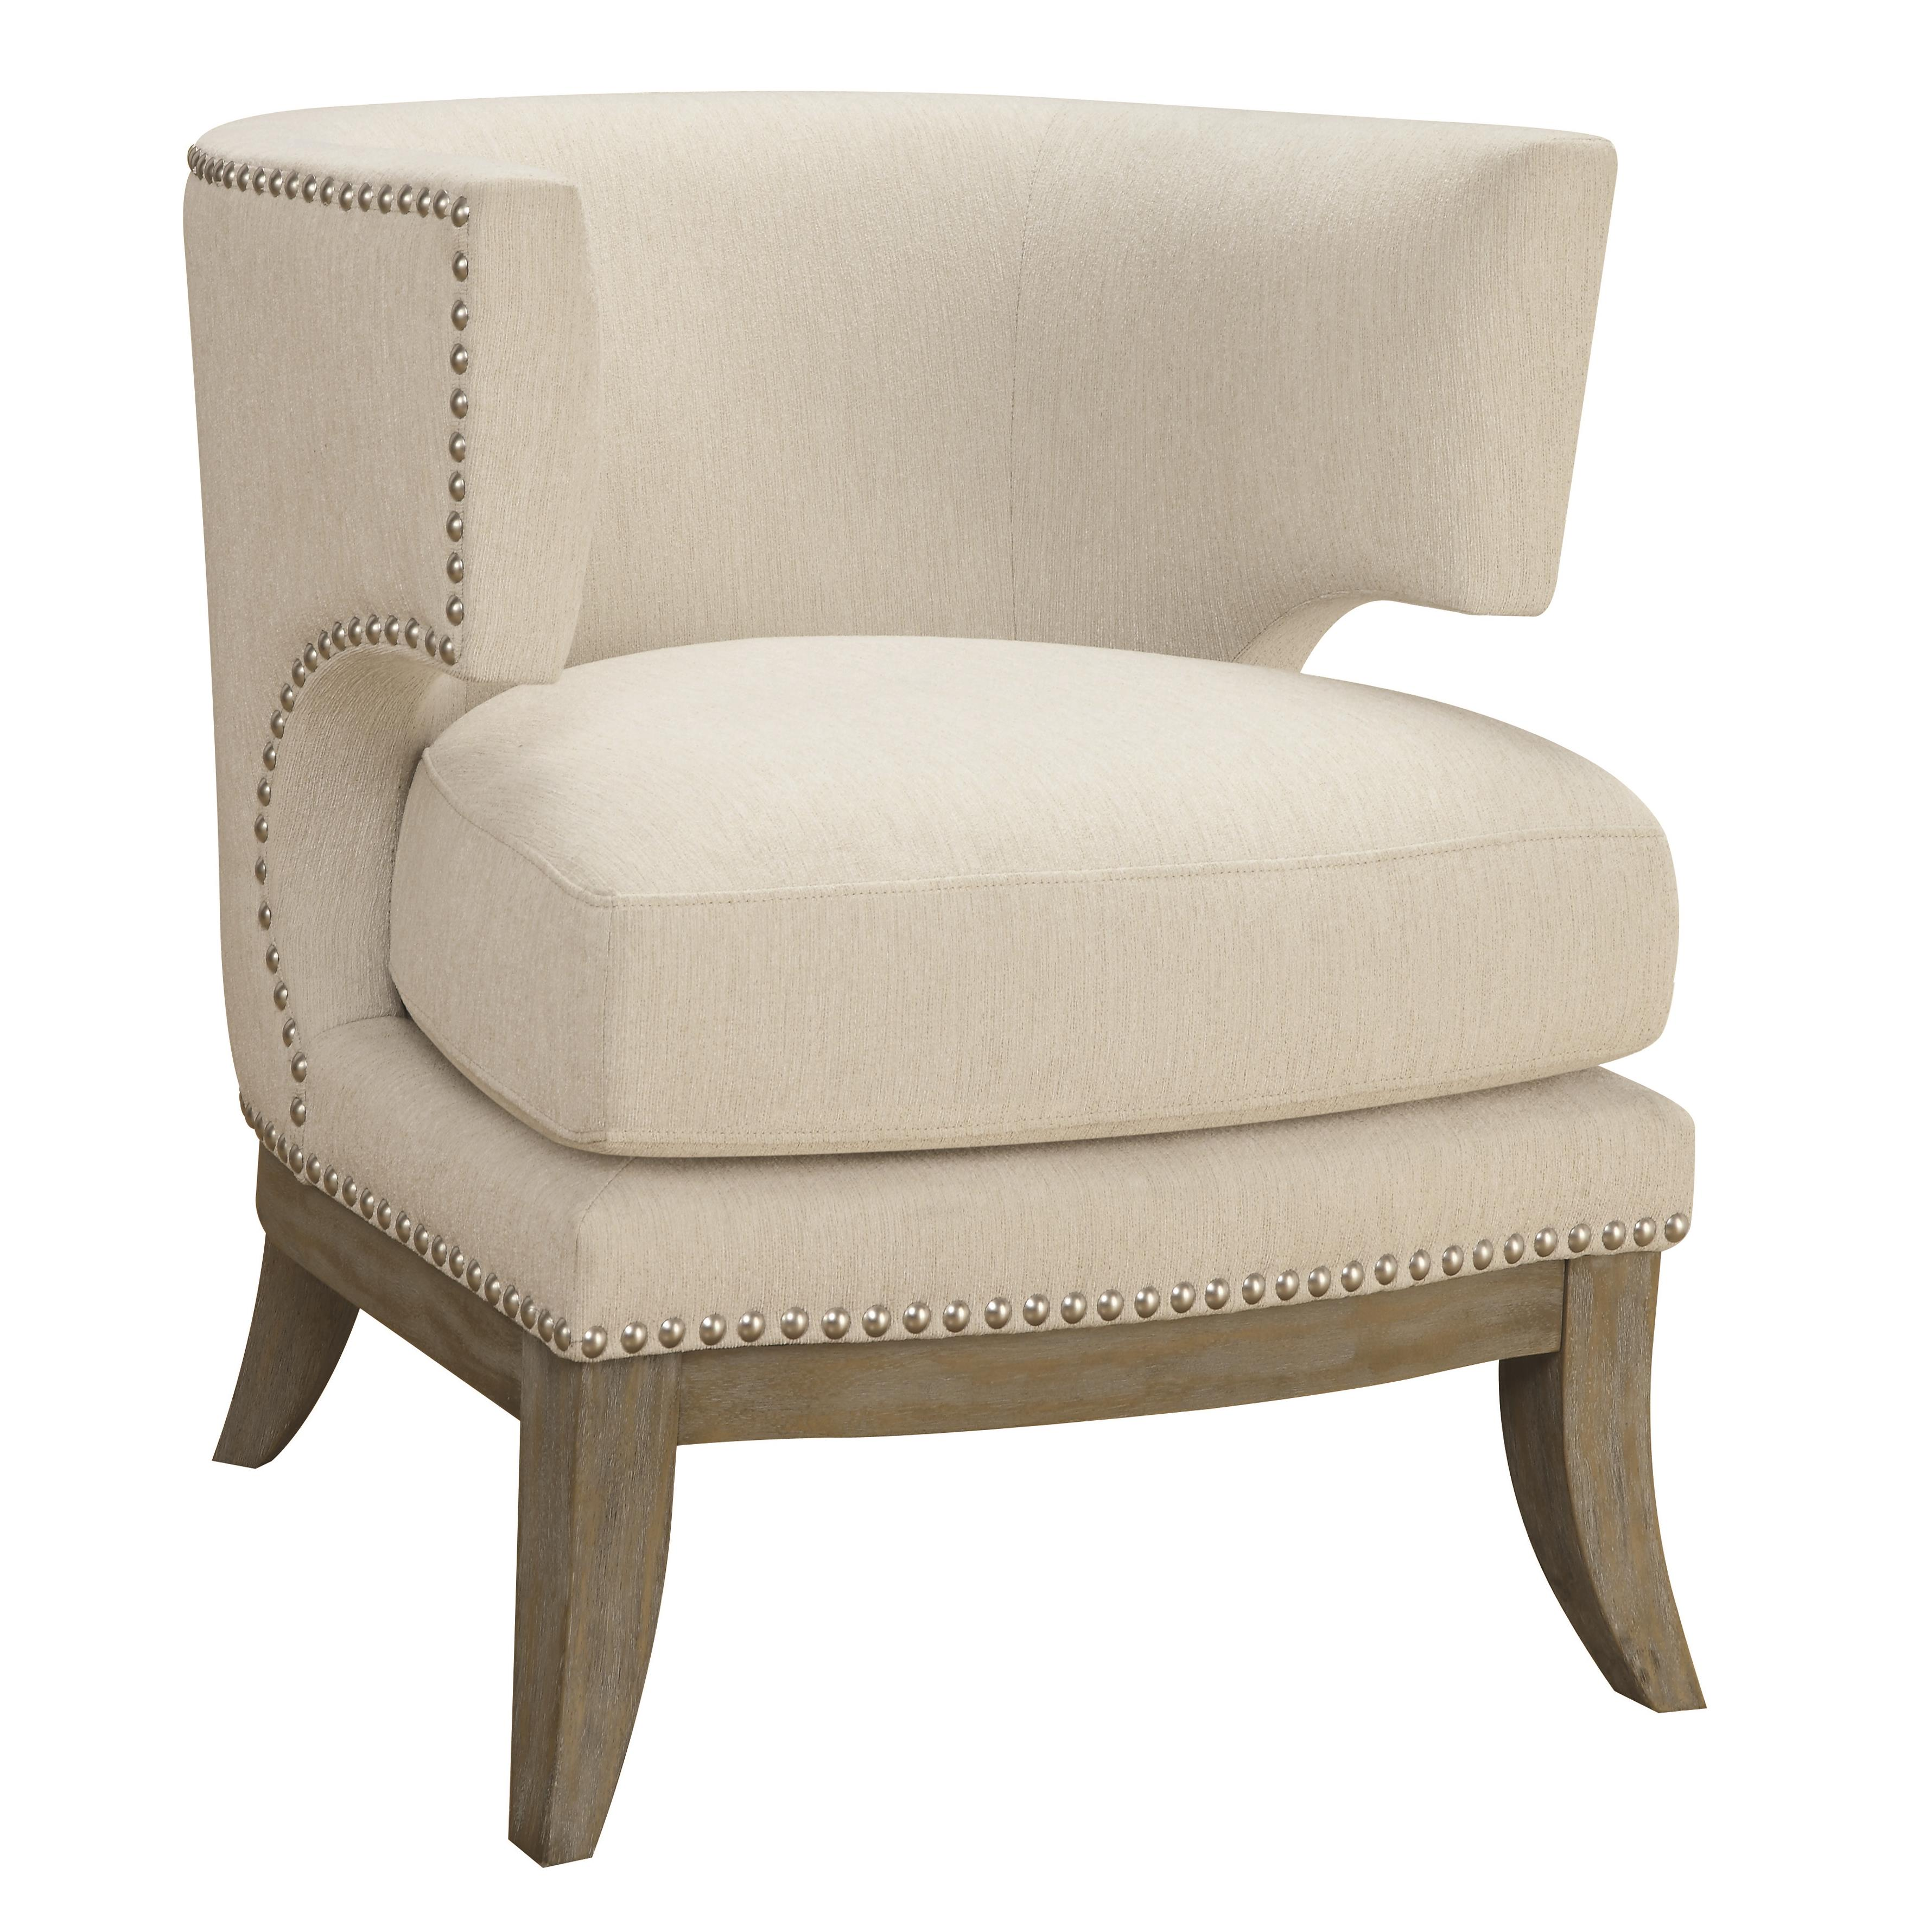 Coaster Accent Seating Barrel Back Upholstered Accent Chair Dream Home Furniture Upholstered